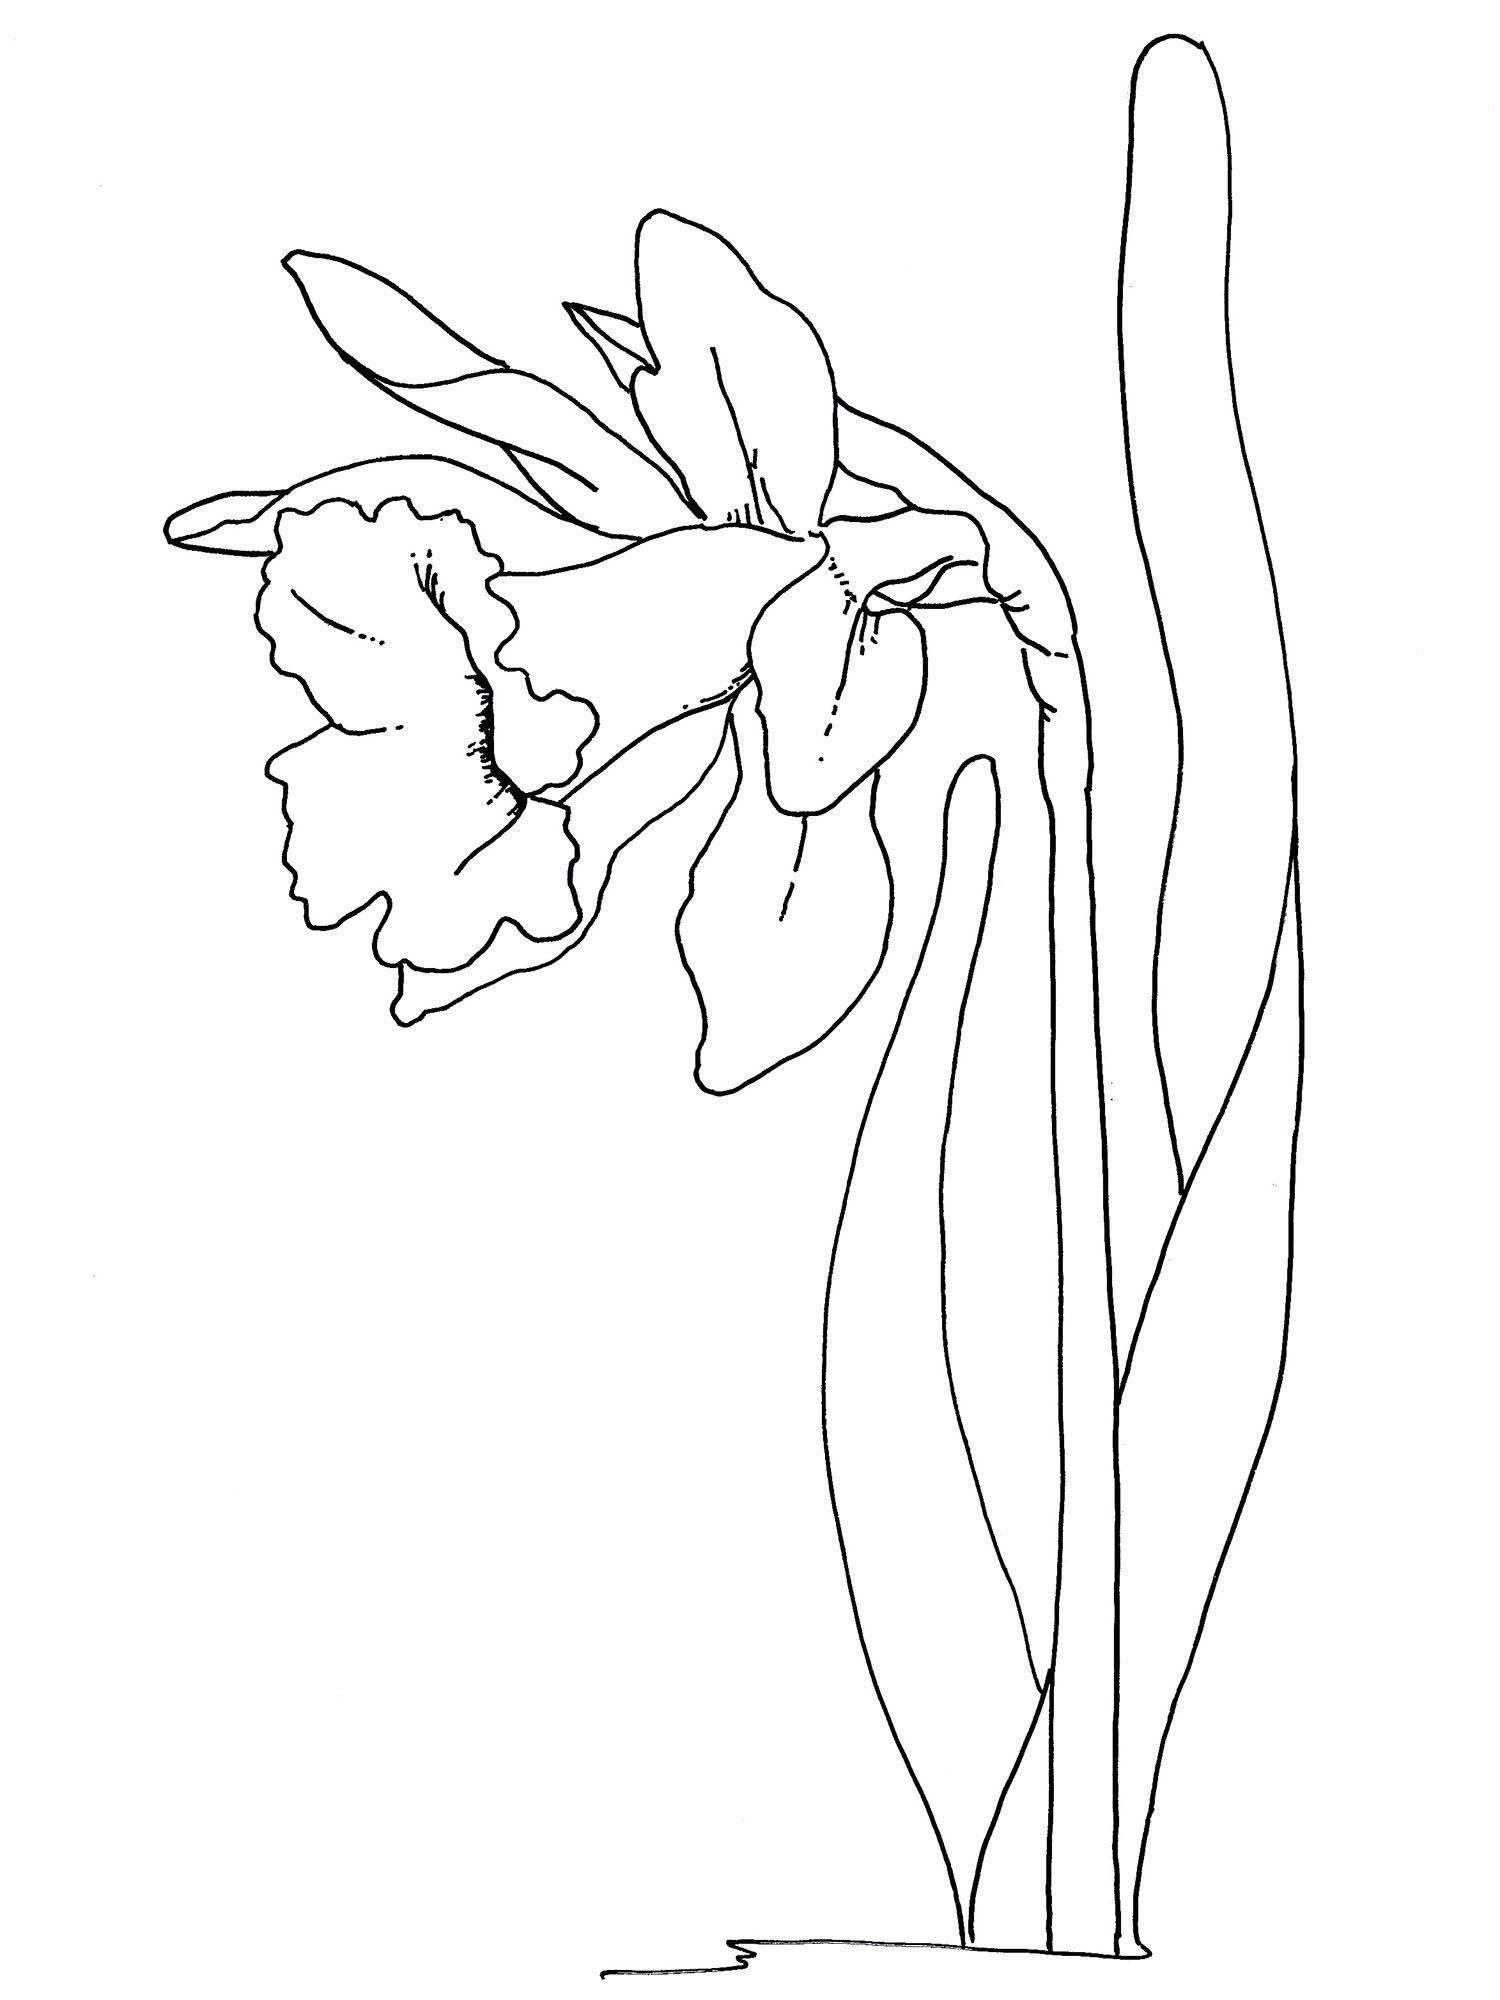 Easter Flowers Coloring Pages – Daffodil Coloring Pages by the Collection Of New Daffodil Flower Coloring Pages Collection Printable